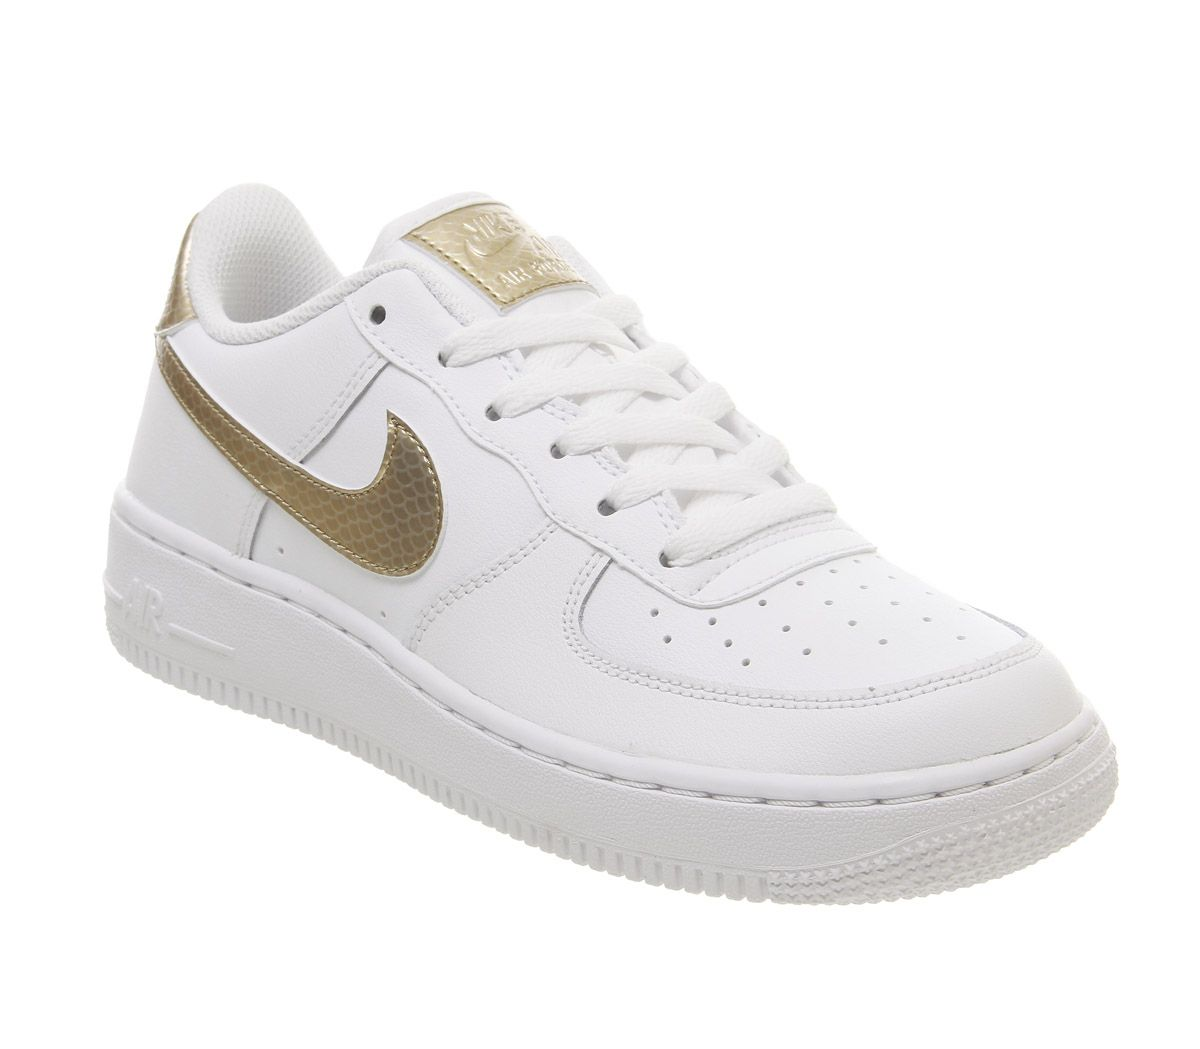 dd4ed16aed877 Nike Air Force 1 Trainers White Blush Gold - Hers trainers